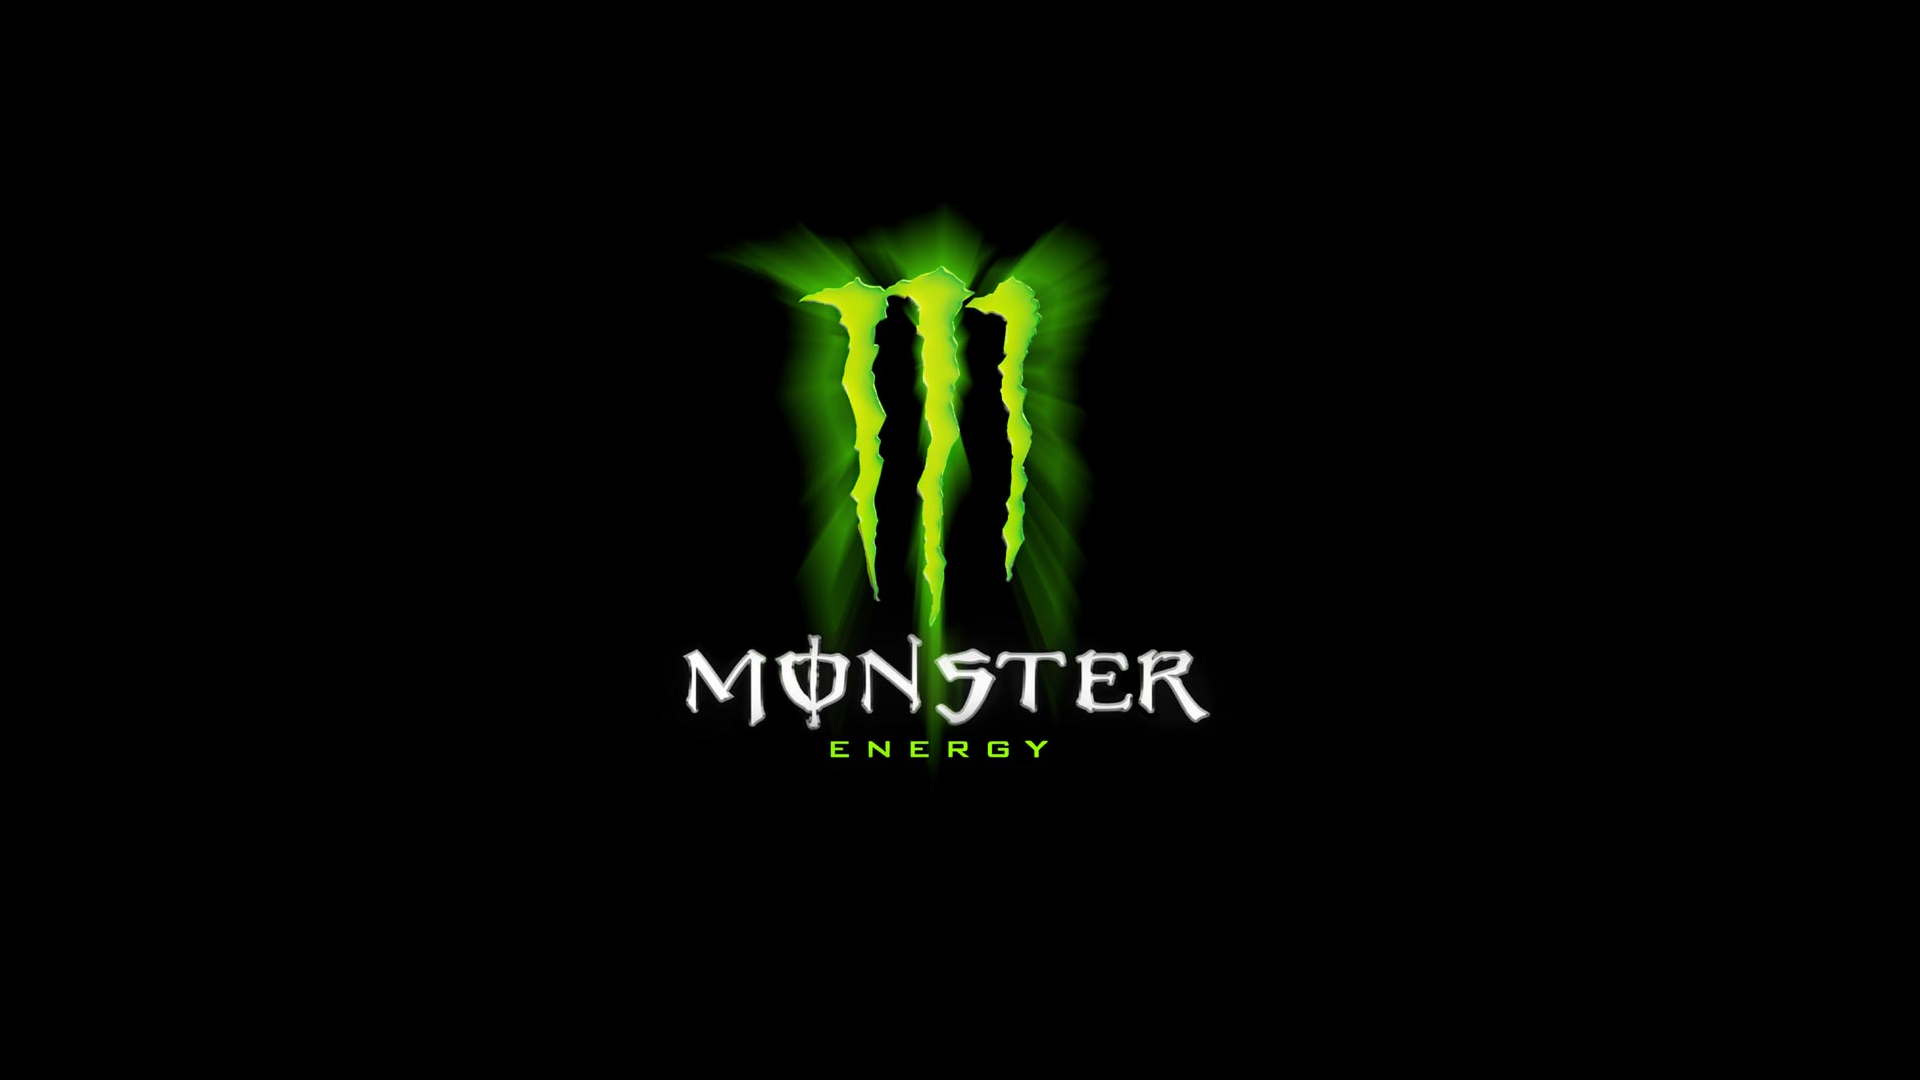 HD Monster Wallpapers and Photos, 1920x1080 | By Gregorio Mulholland